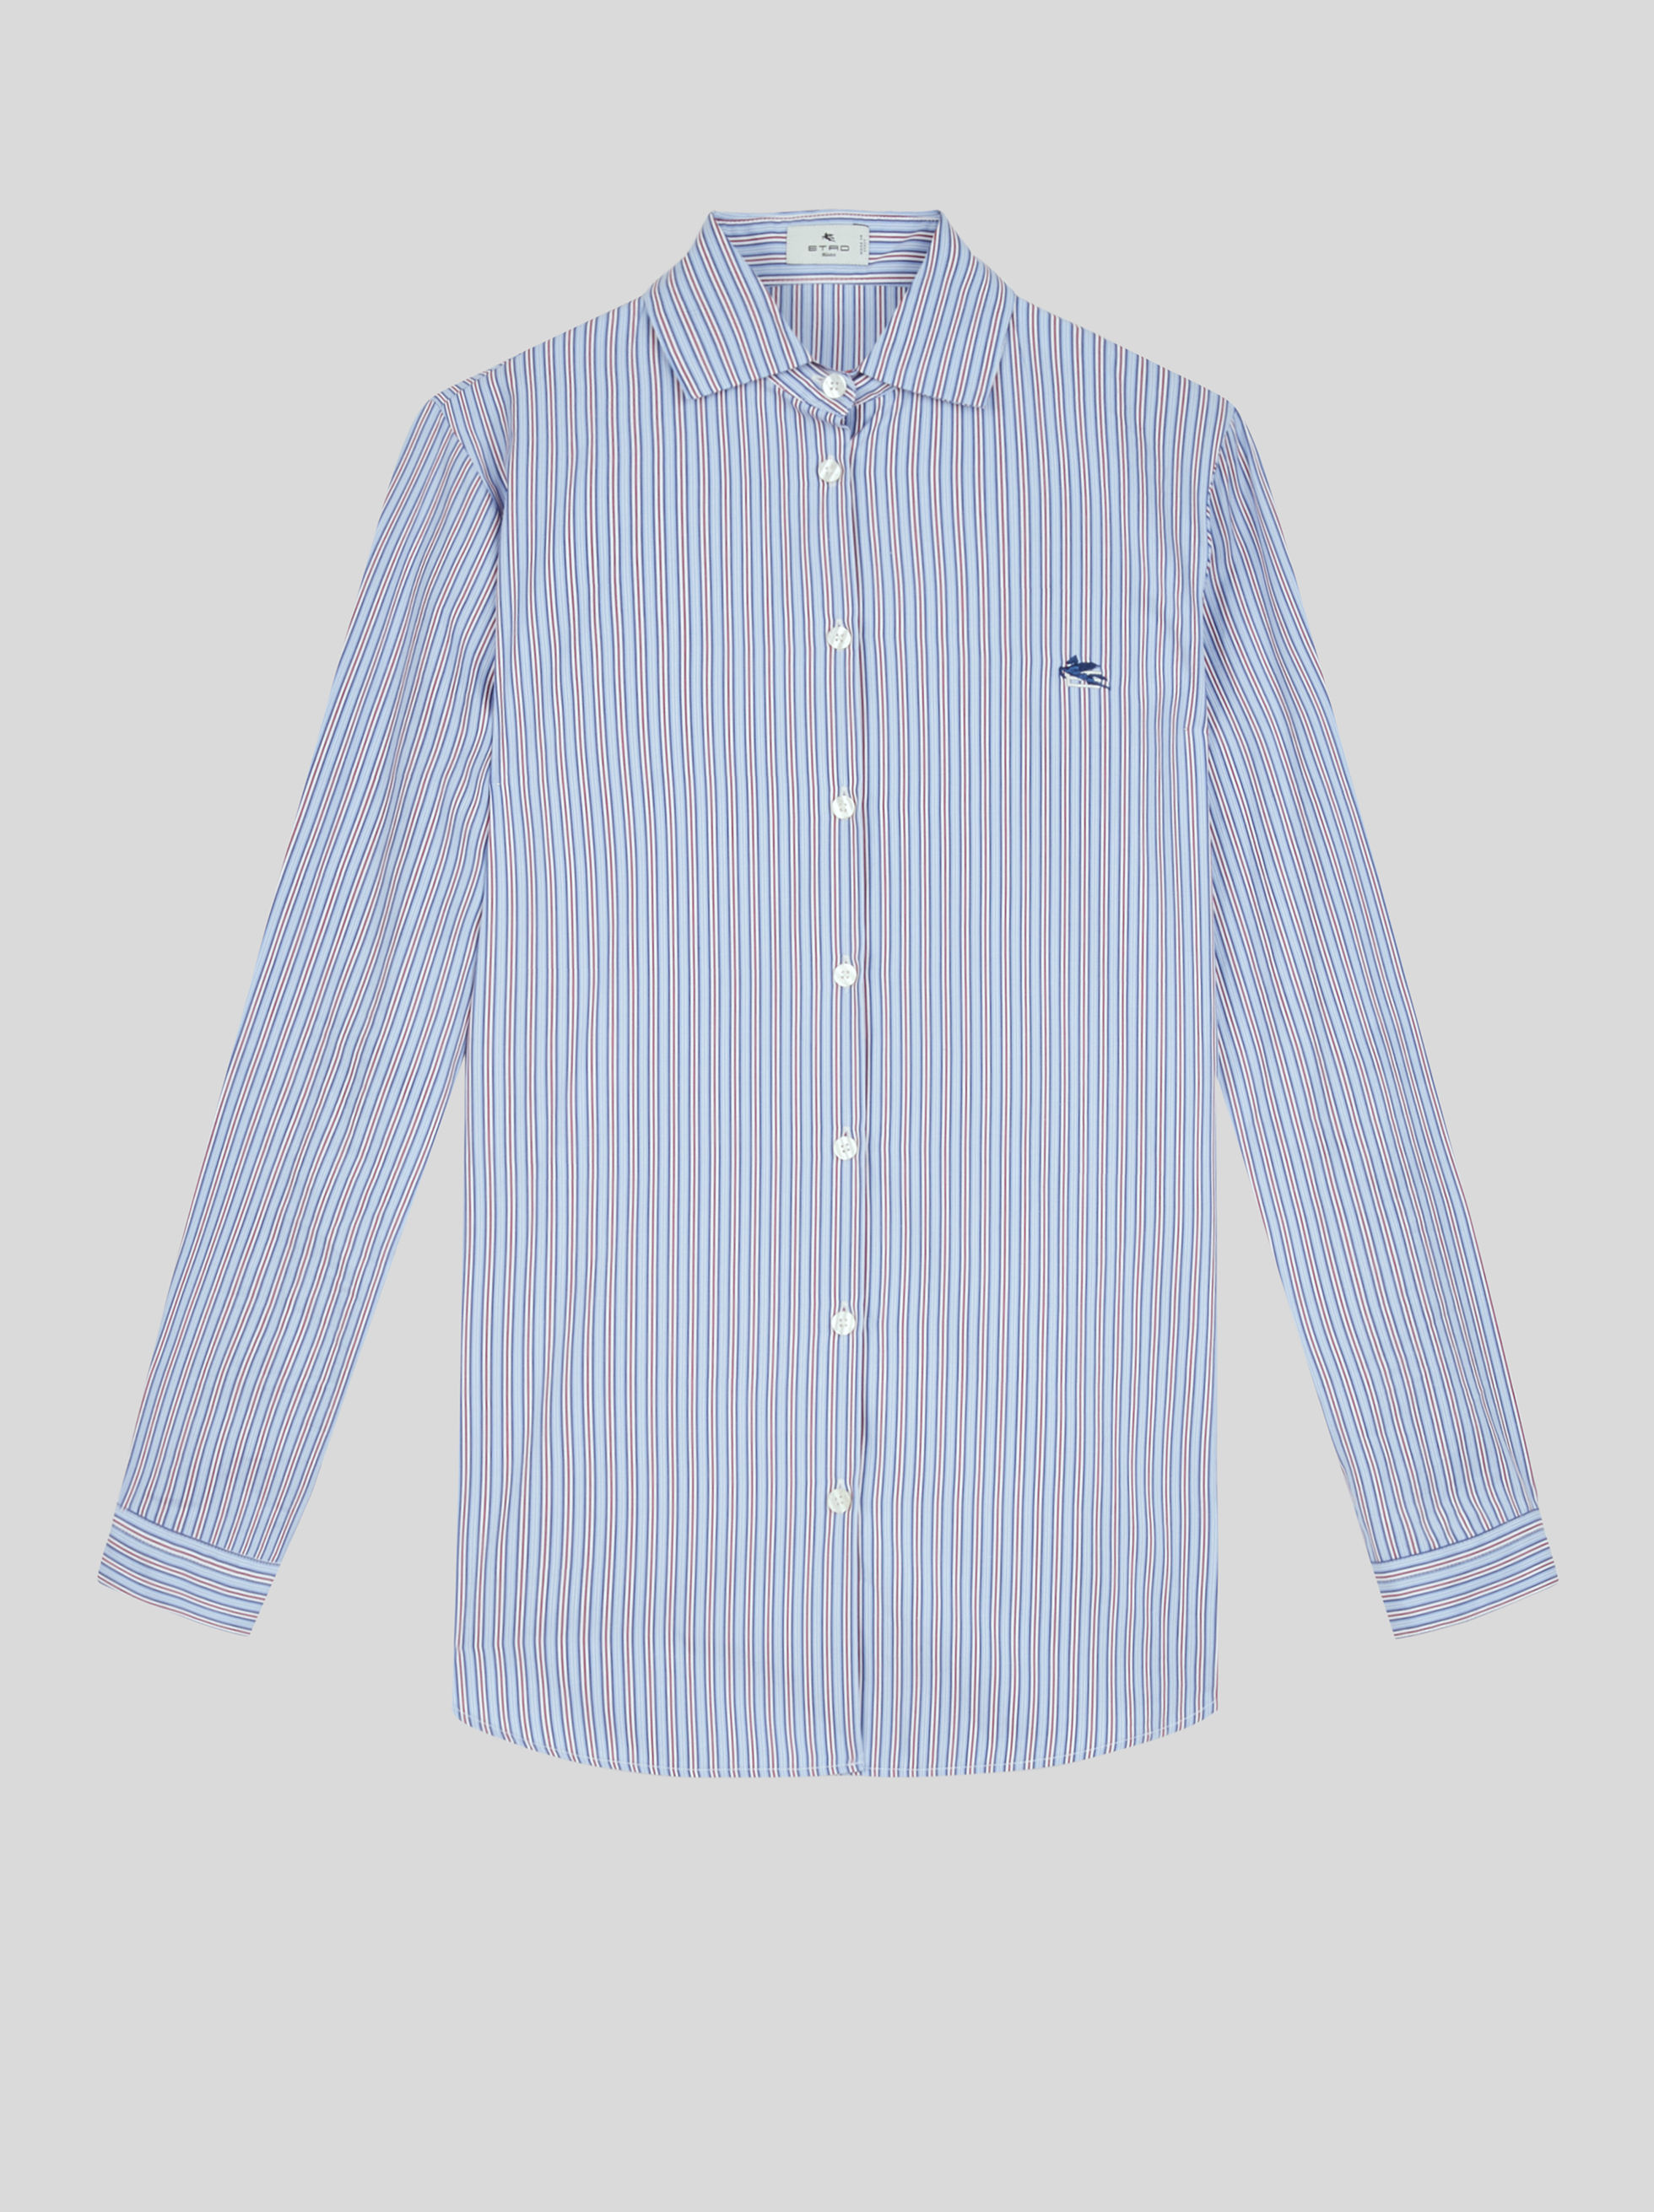 STRIPED SHIRT WITH PEGASO